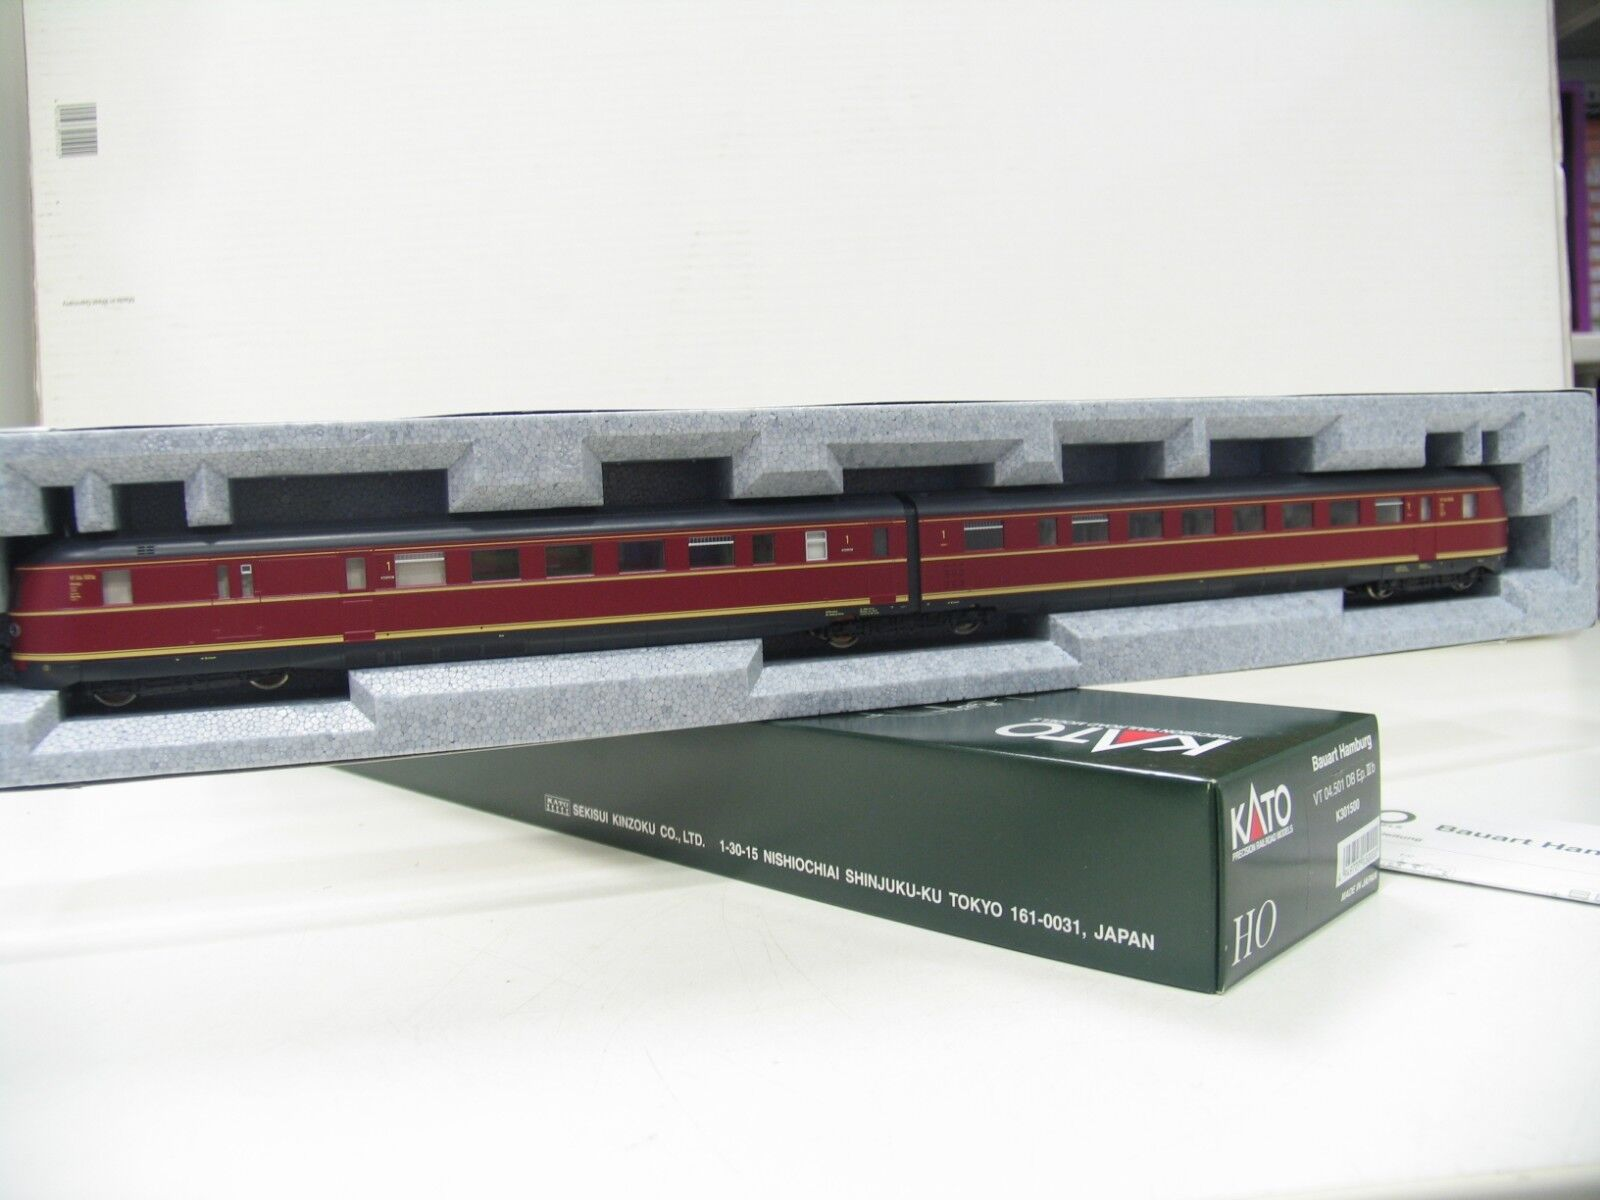 Kato 301500 DMU VT 04 Red DB DB wm60